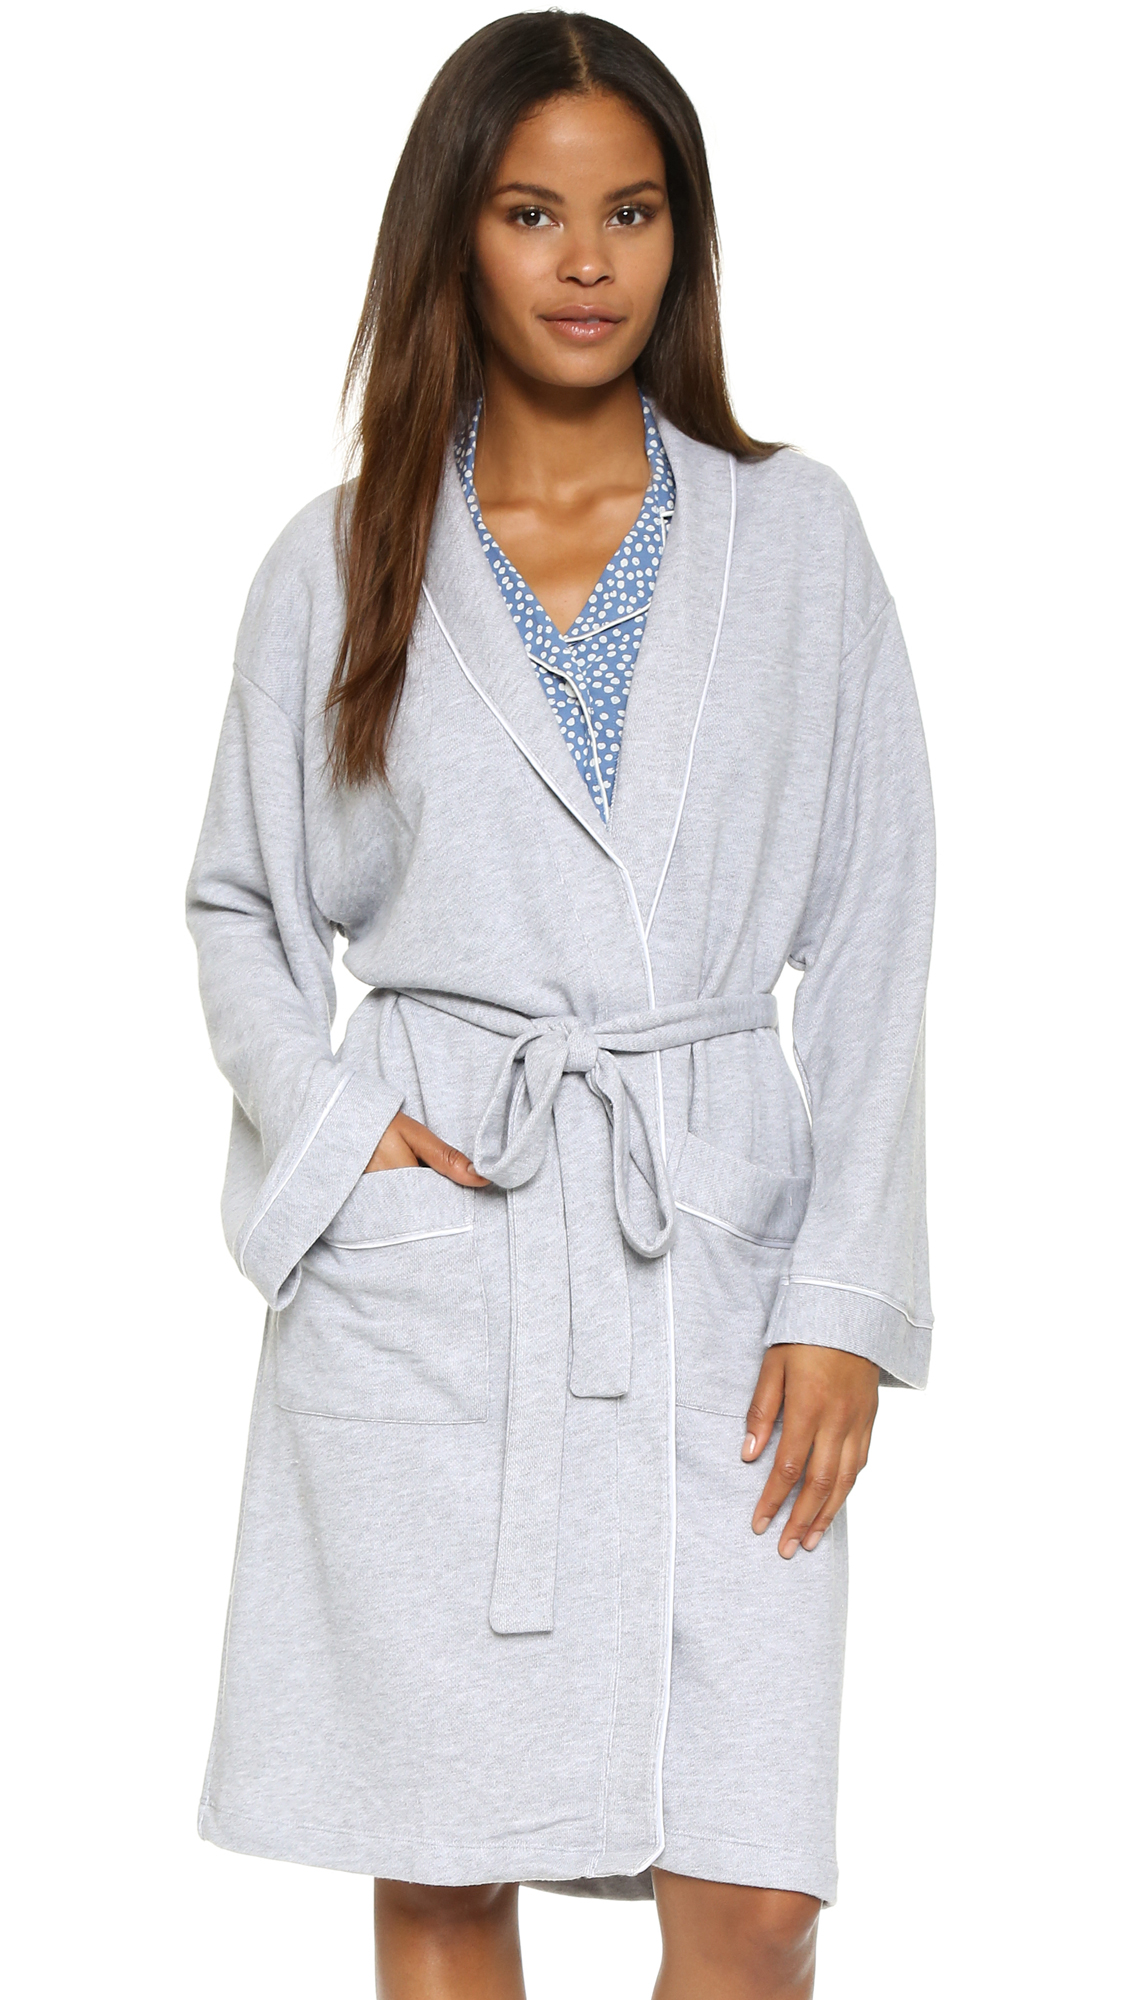 Lyst - Cosabella Bella French Terry Hotel Robe - Heather Gray/white ...